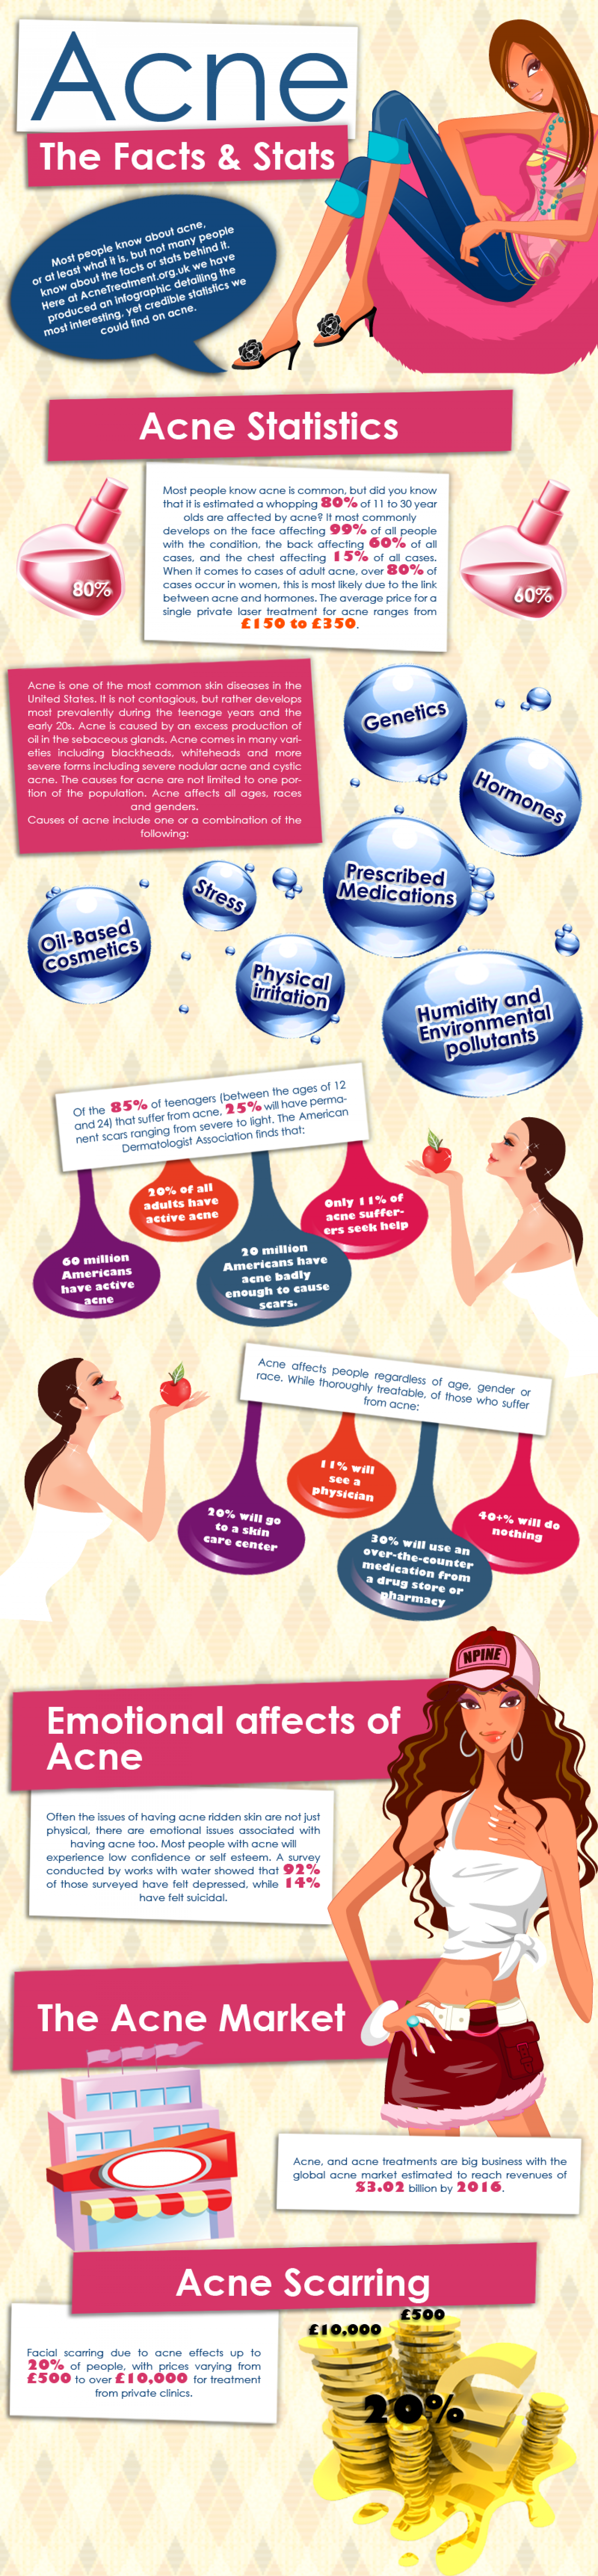 Acne- The Facts & Stats Infographic